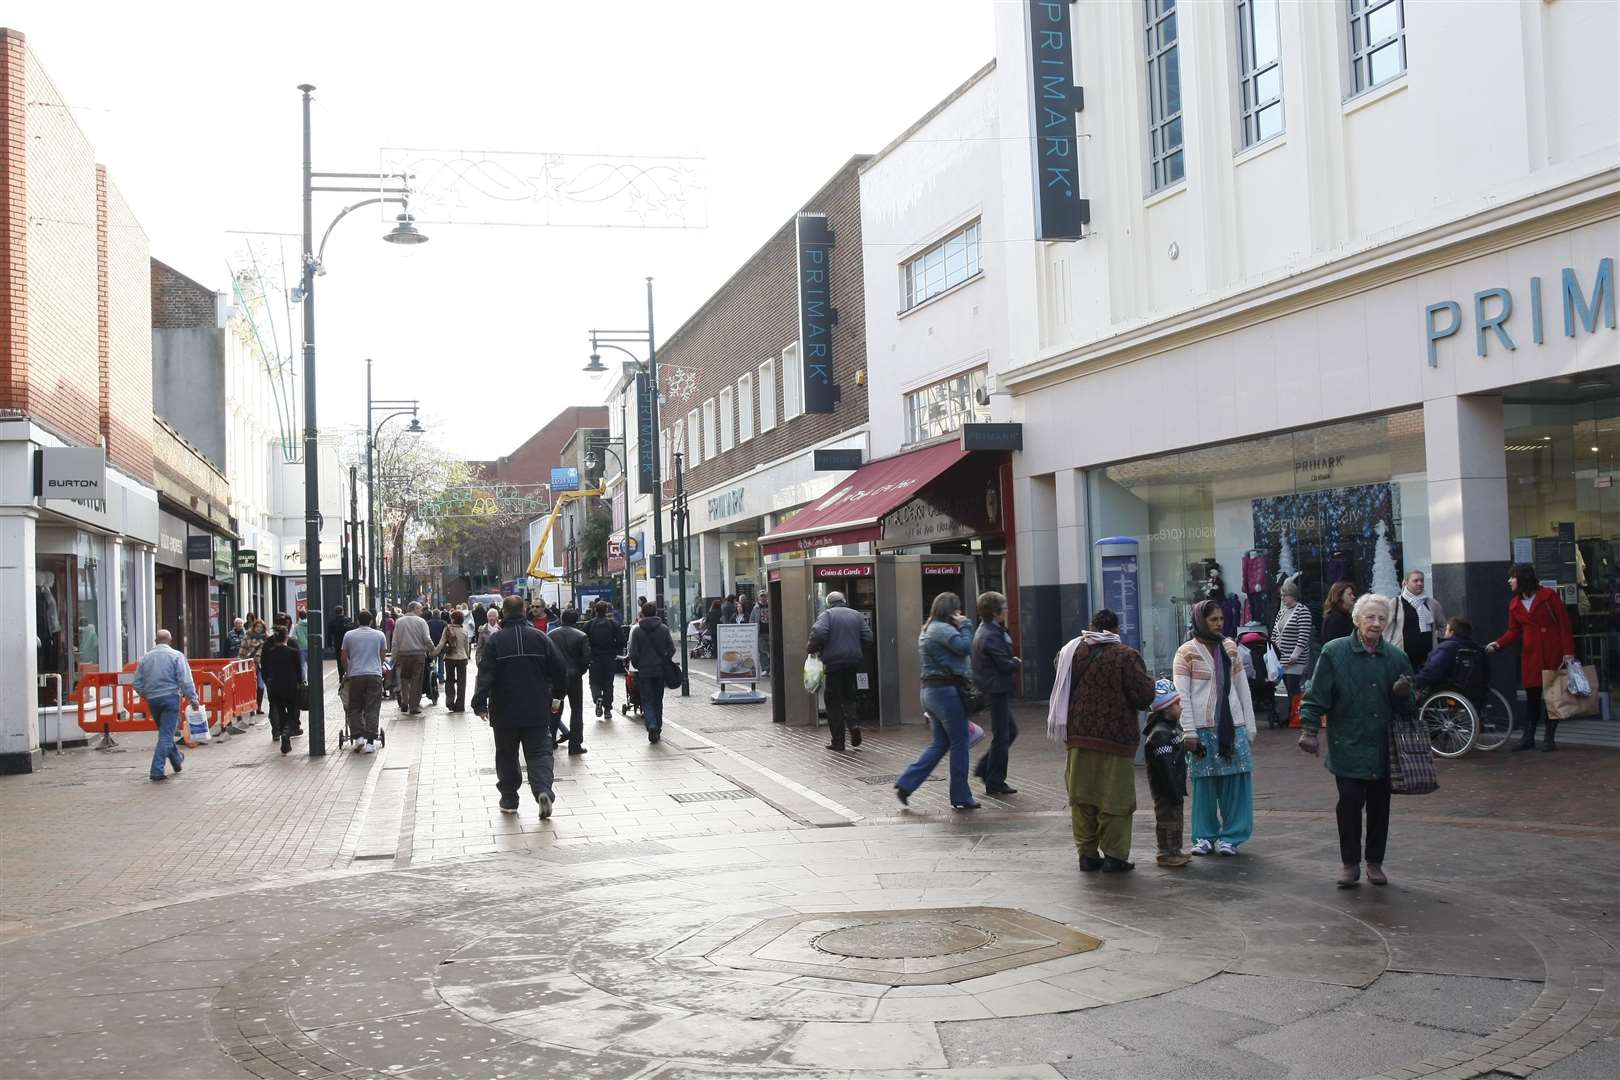 Scenes from Chatham town centre.High Street, Chatham.Picture: Peter Still(39005070)